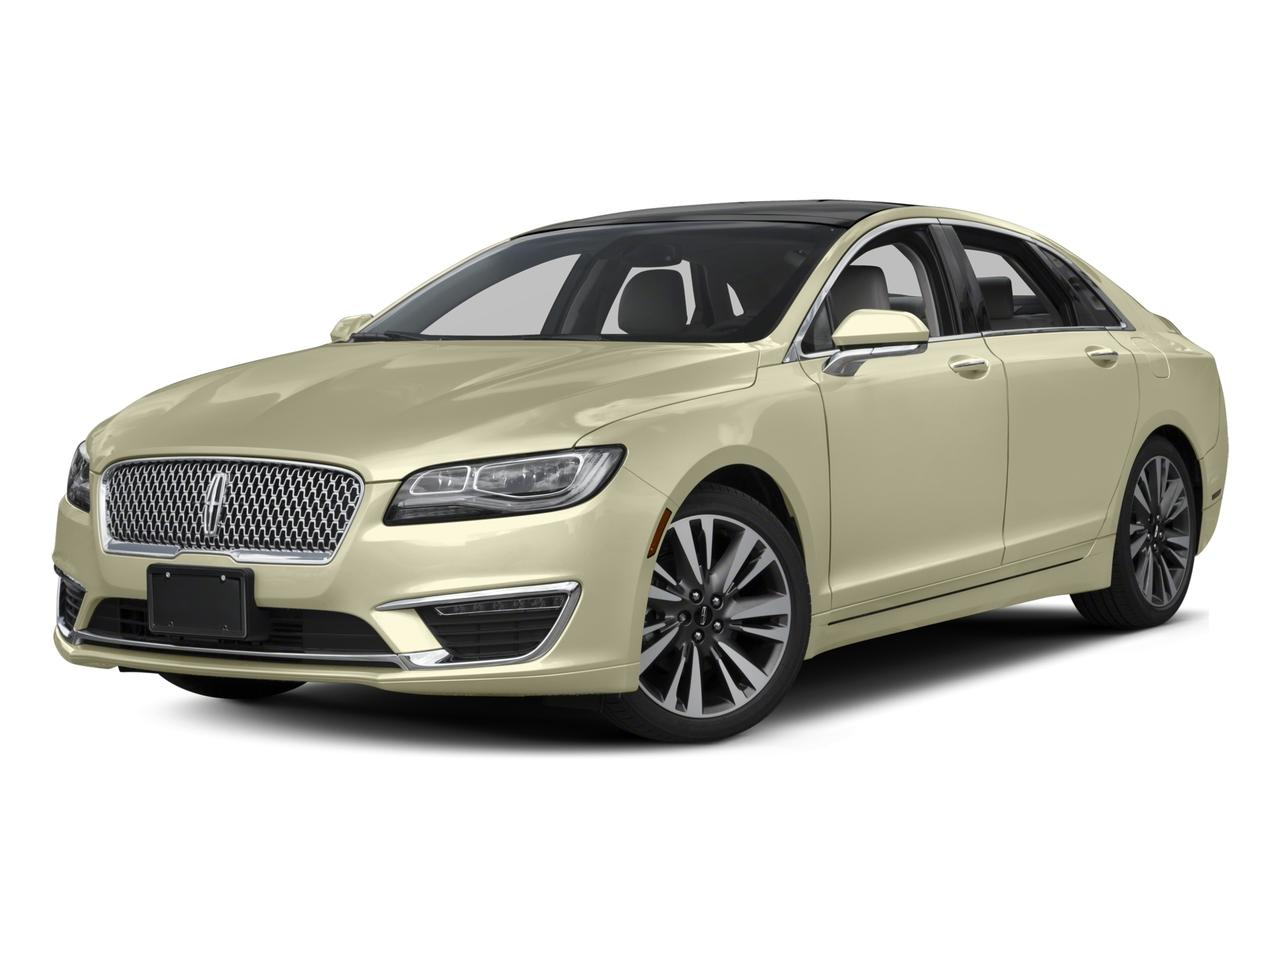 2017 LINCOLN MKZ Vehicle Photo in Elyria, OH 44035